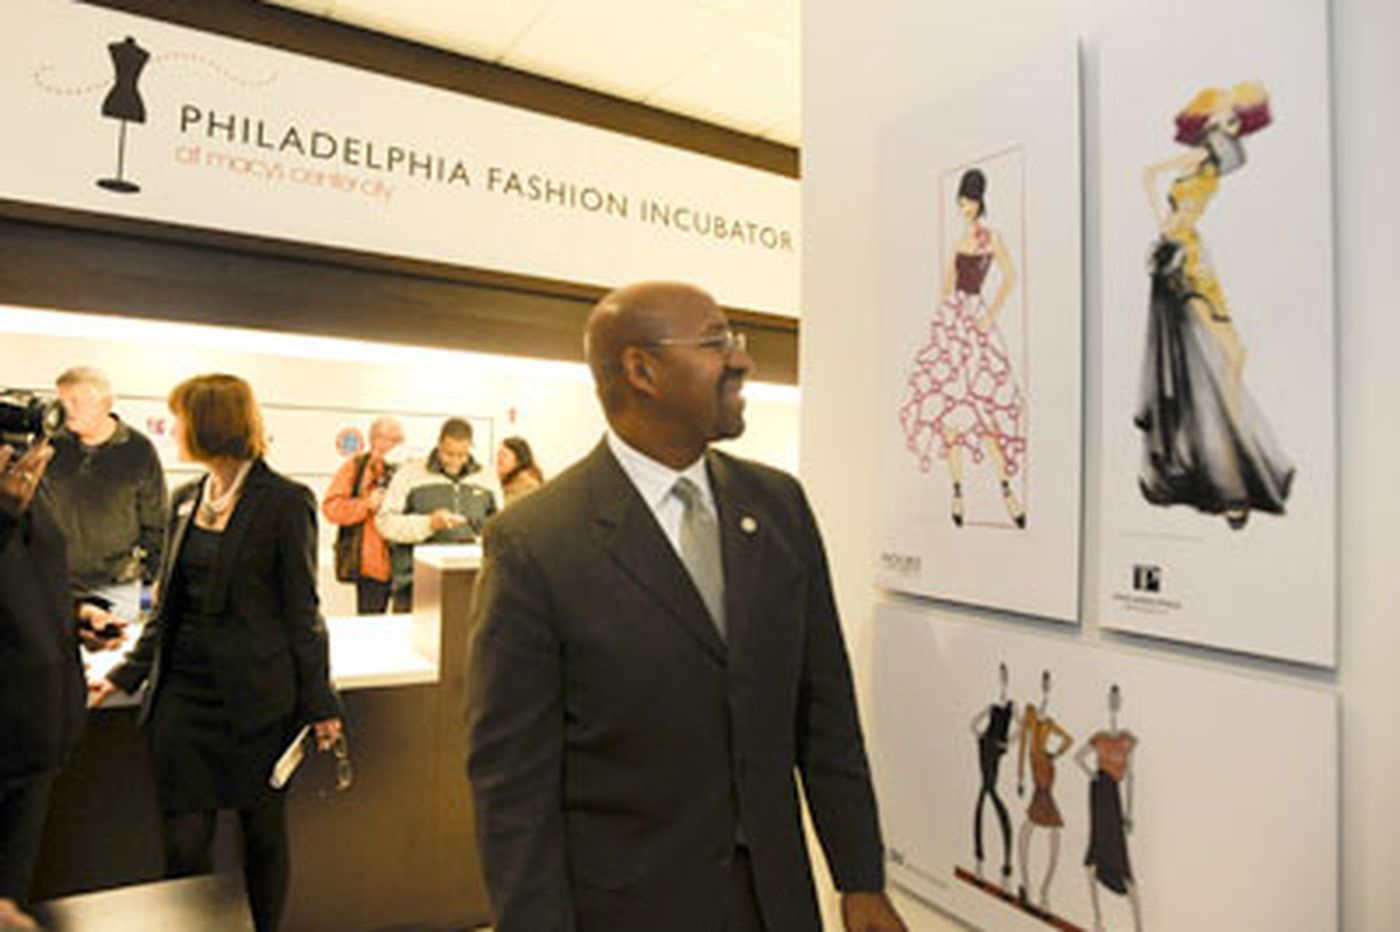 Philly Fashion Incubator hopes to benefit young designers